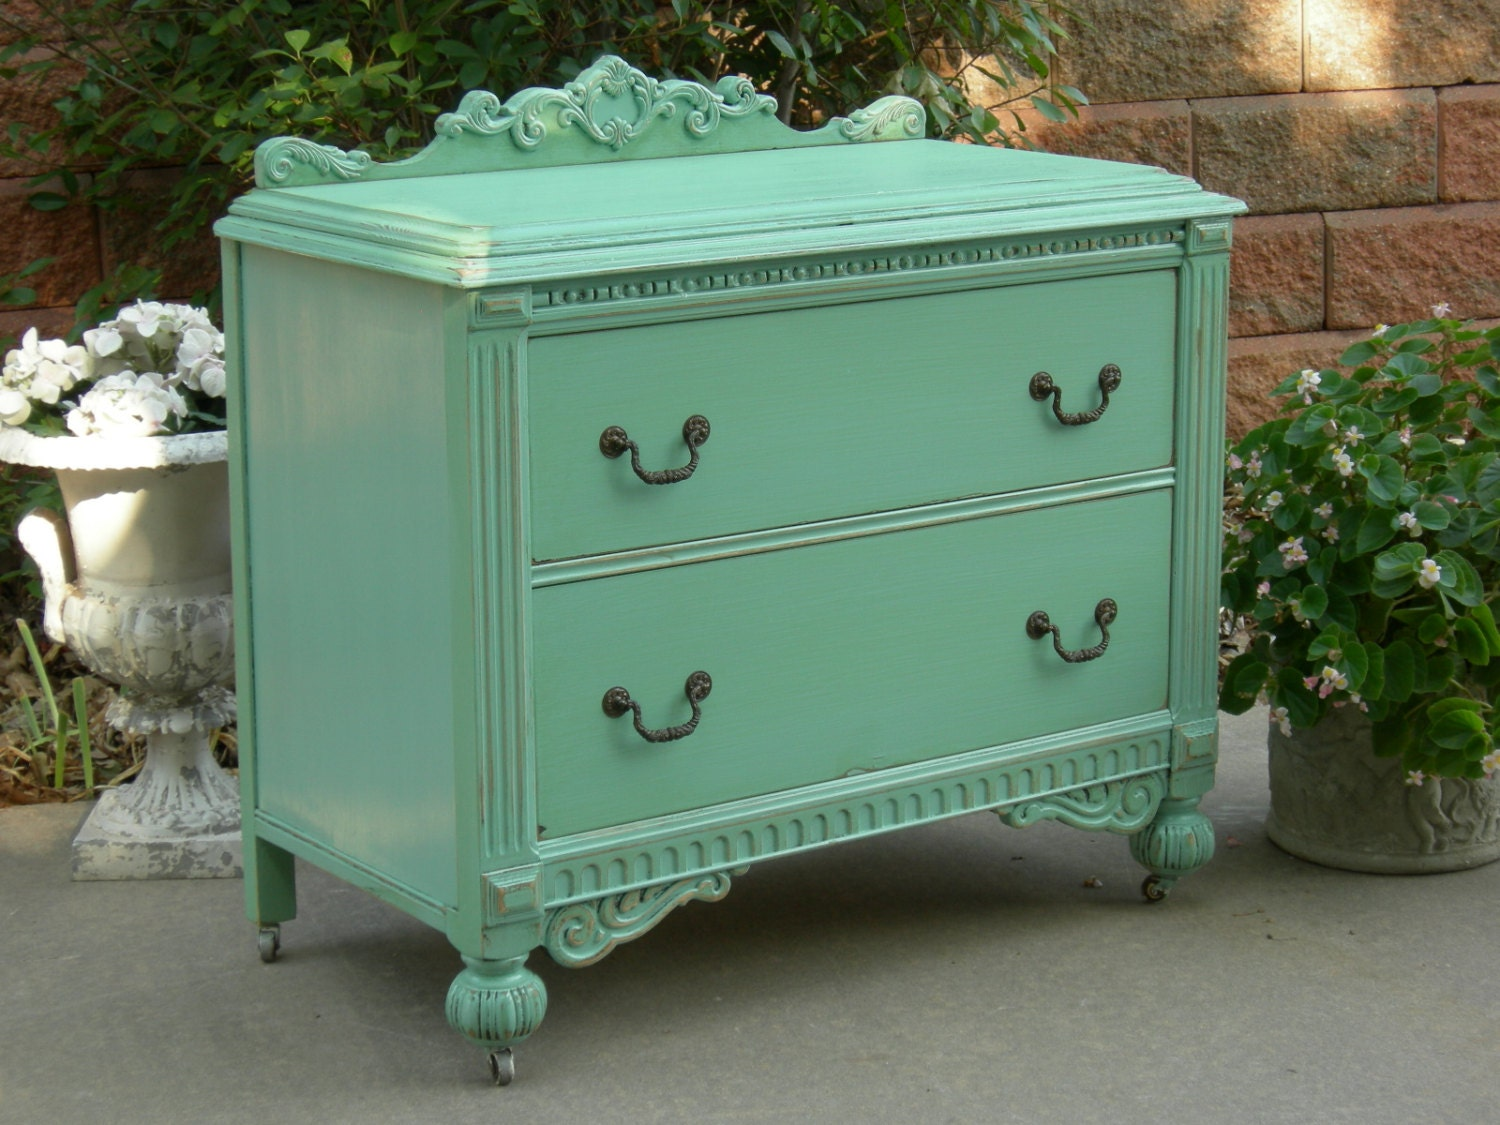 ... Shabby Chic Furniture. Gallery Photo Gallery Photo Gallery Photo  Gallery Photo Gallery Photo